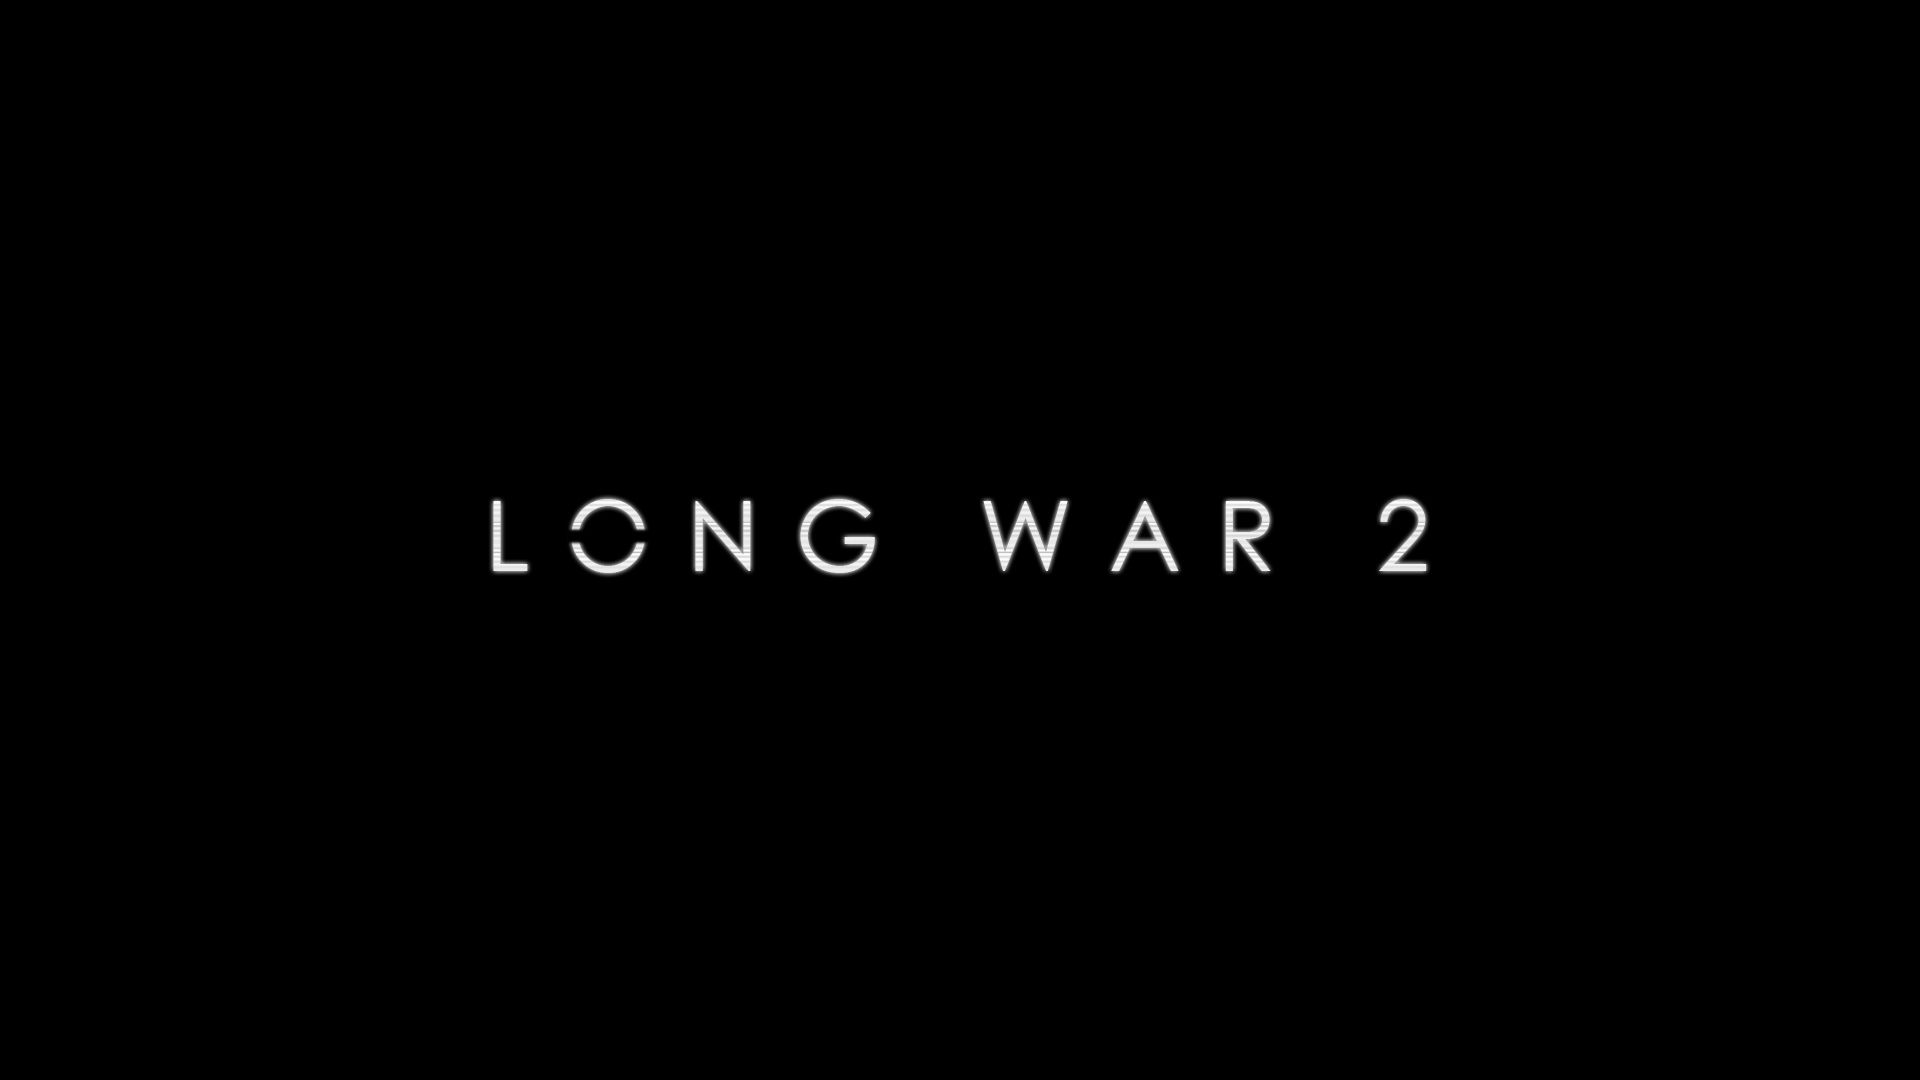 ES - Long War 2 Mod Coming to XCOM 2 on P